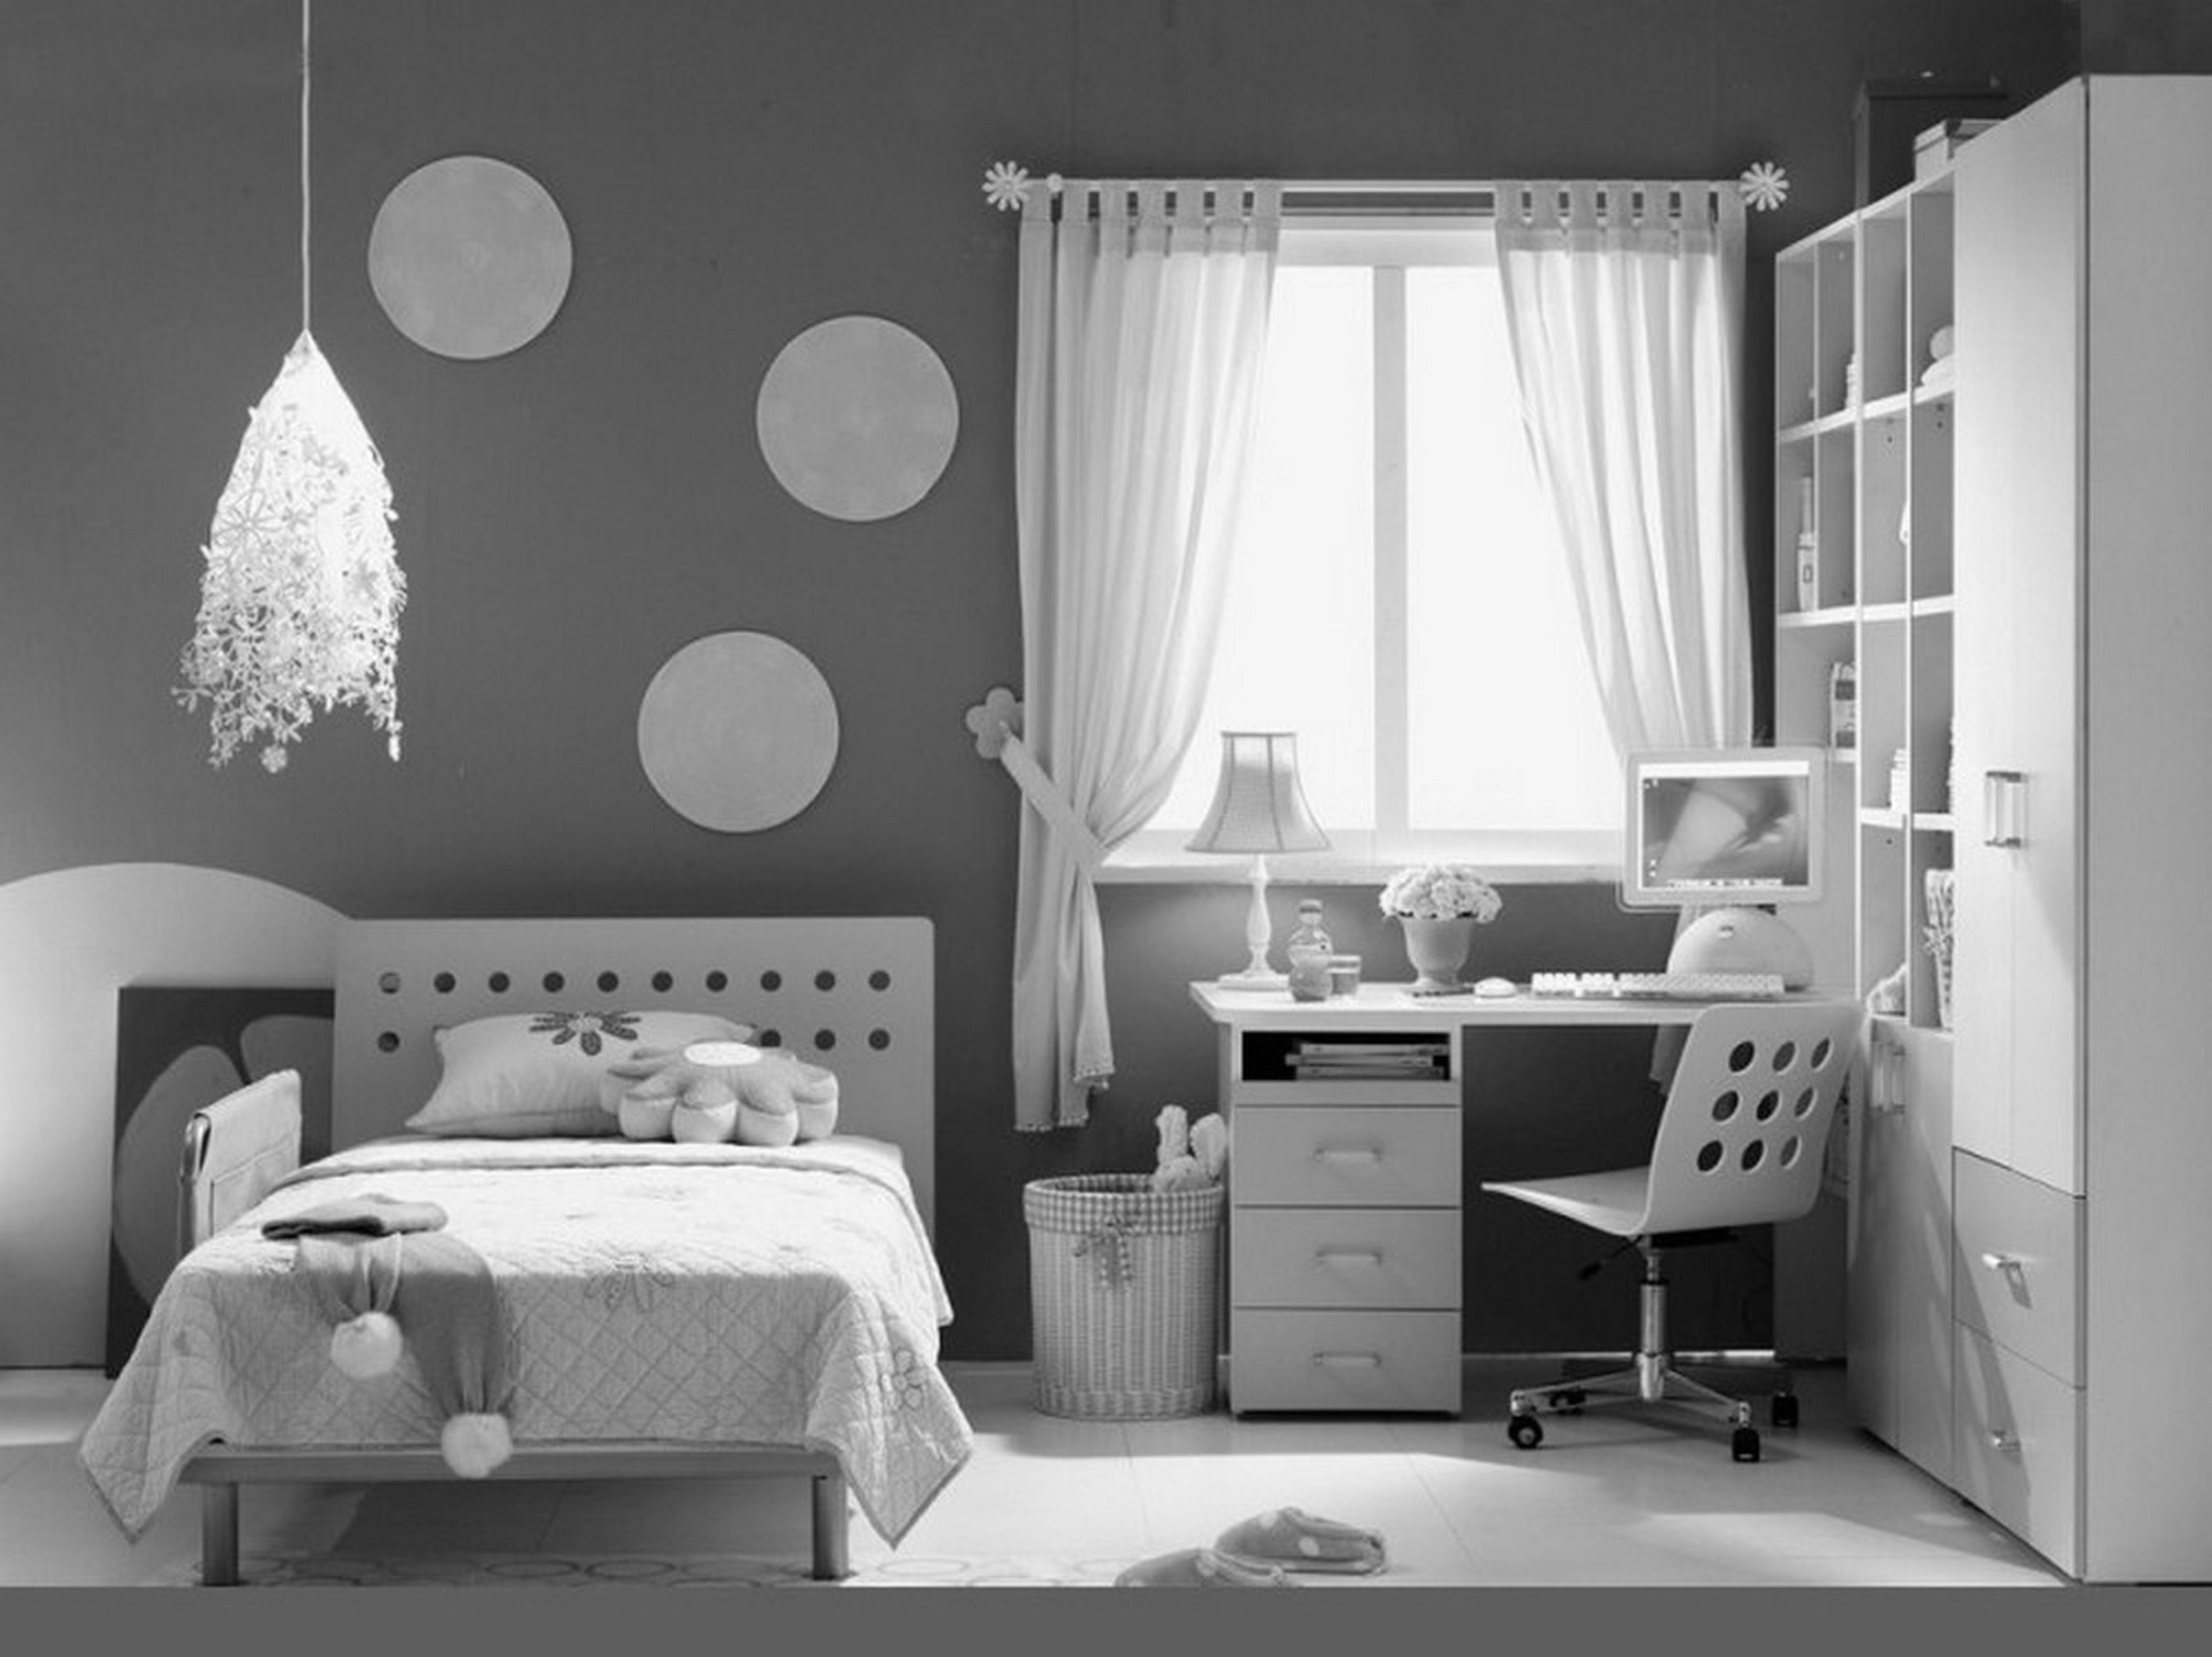 Mind Blowing Modern Bedroom Ideas Teenage Girls That No One Can Resist Of In 2021 Images Decoratorist